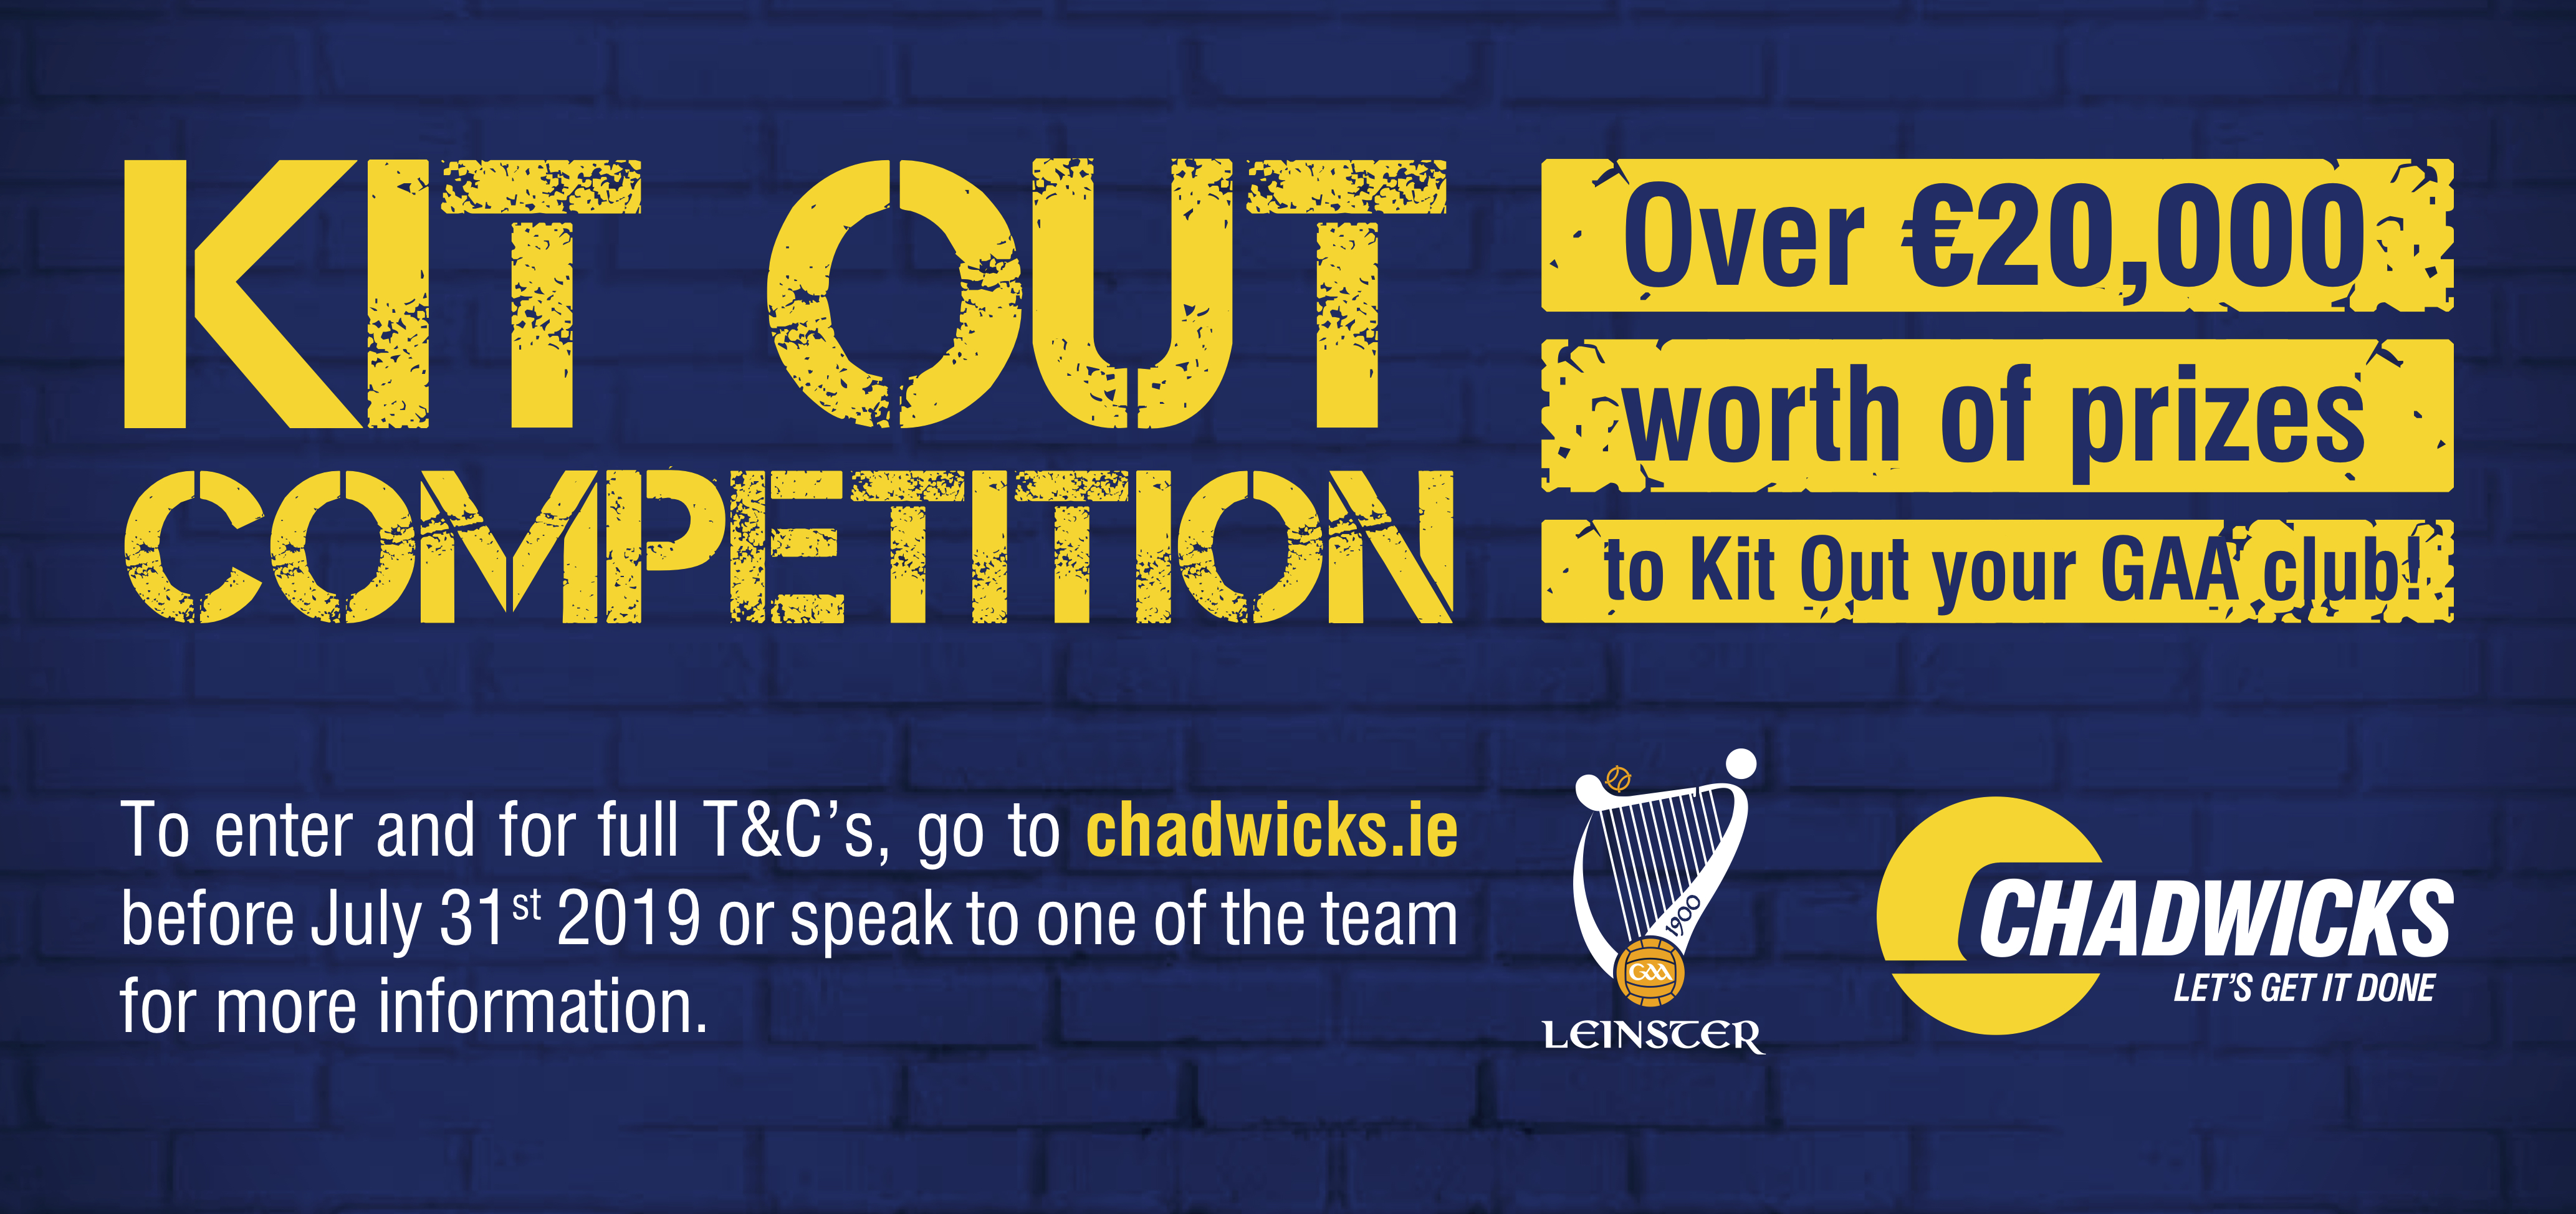 Chadwicks Kit Out Competition